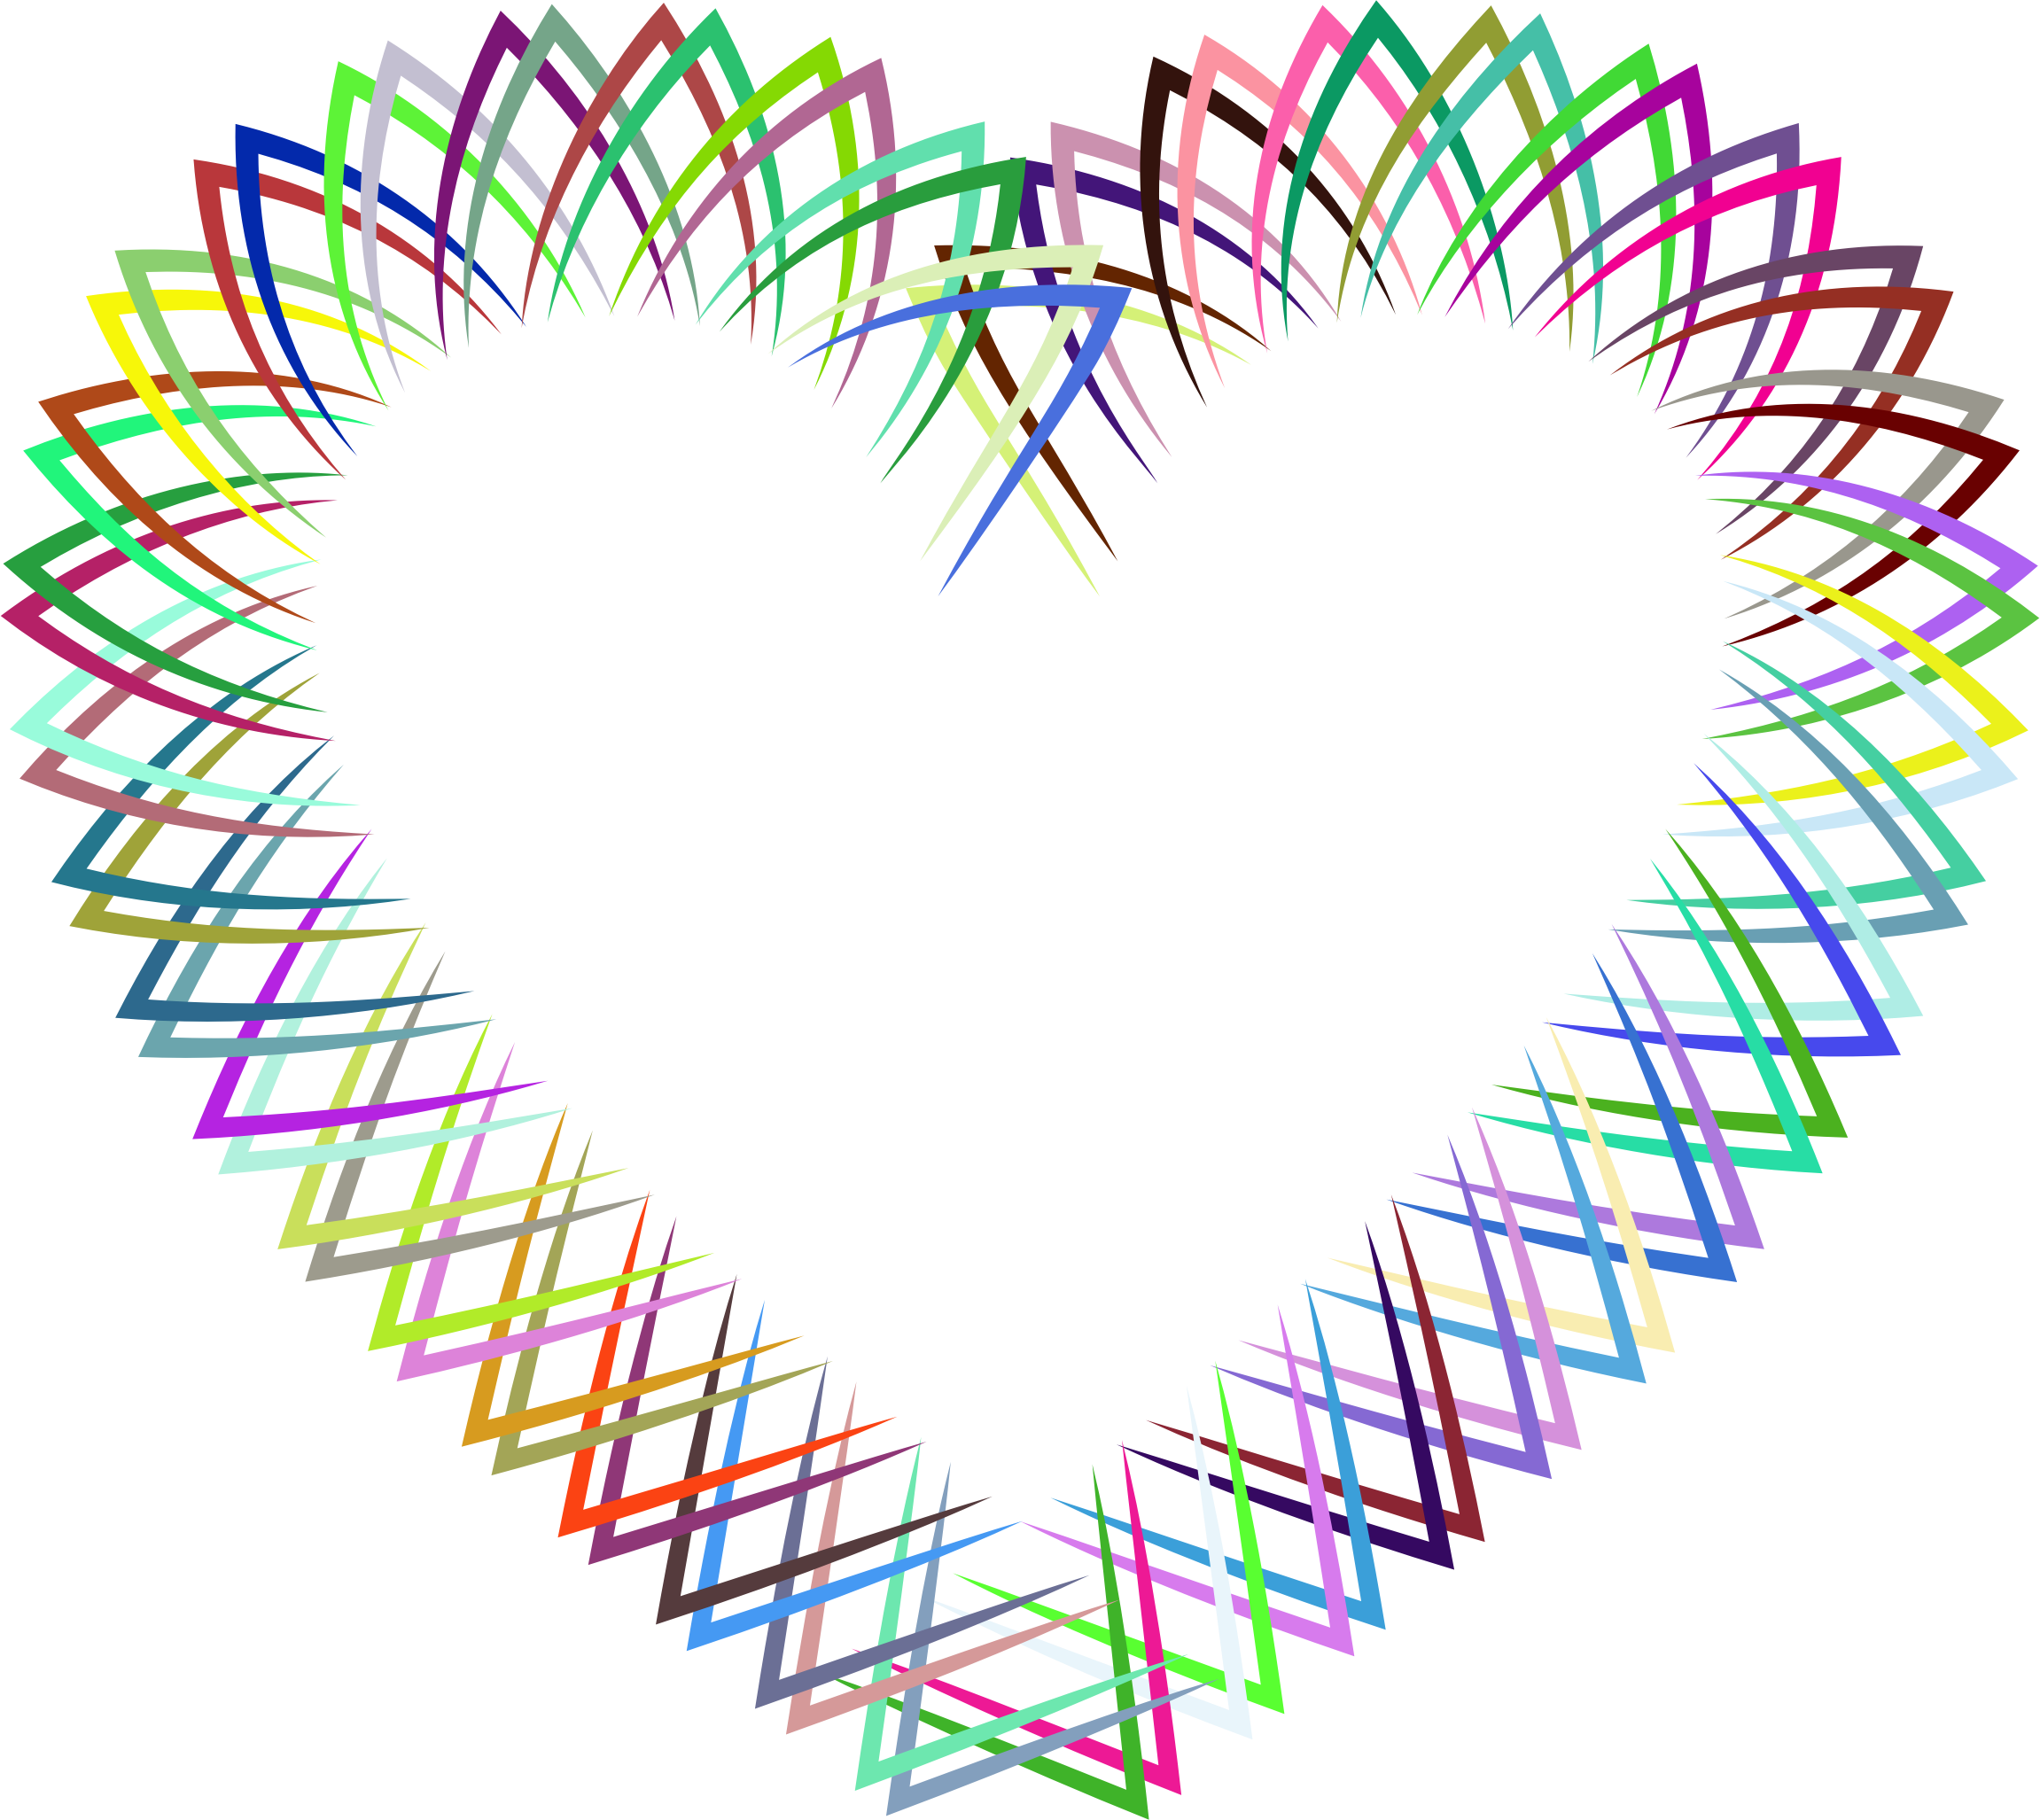 Abstract Geometric Frame I Heart Prismatic by GDJ